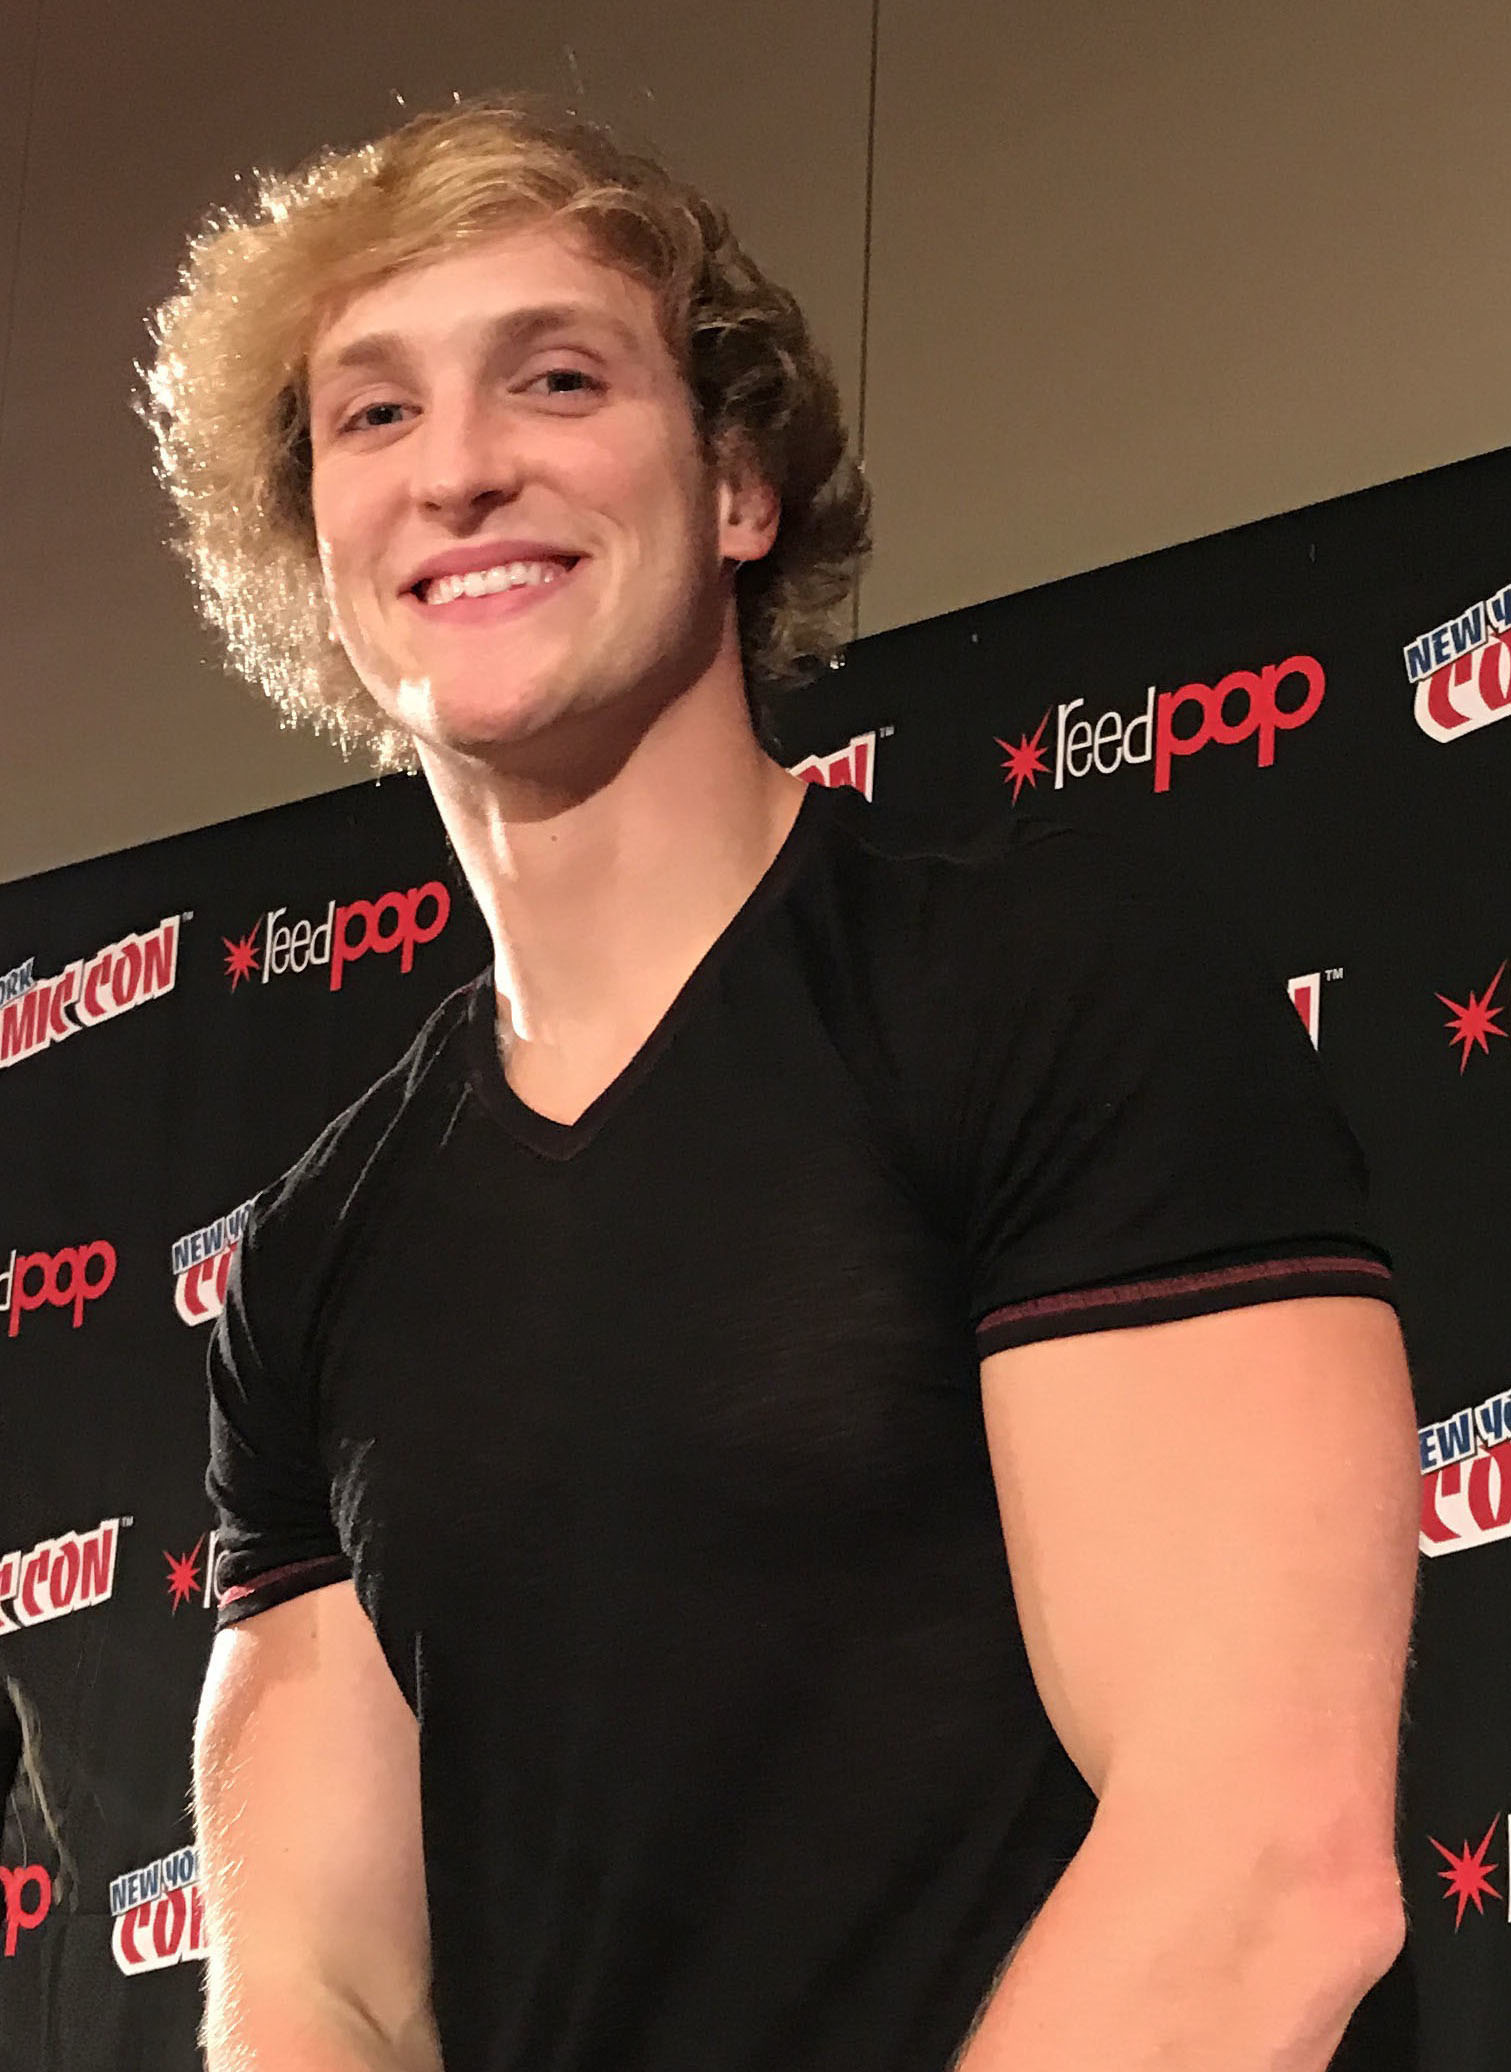 Shirt Collar Size Conversion Chart: Logan Paul - Wikipedia,Chart